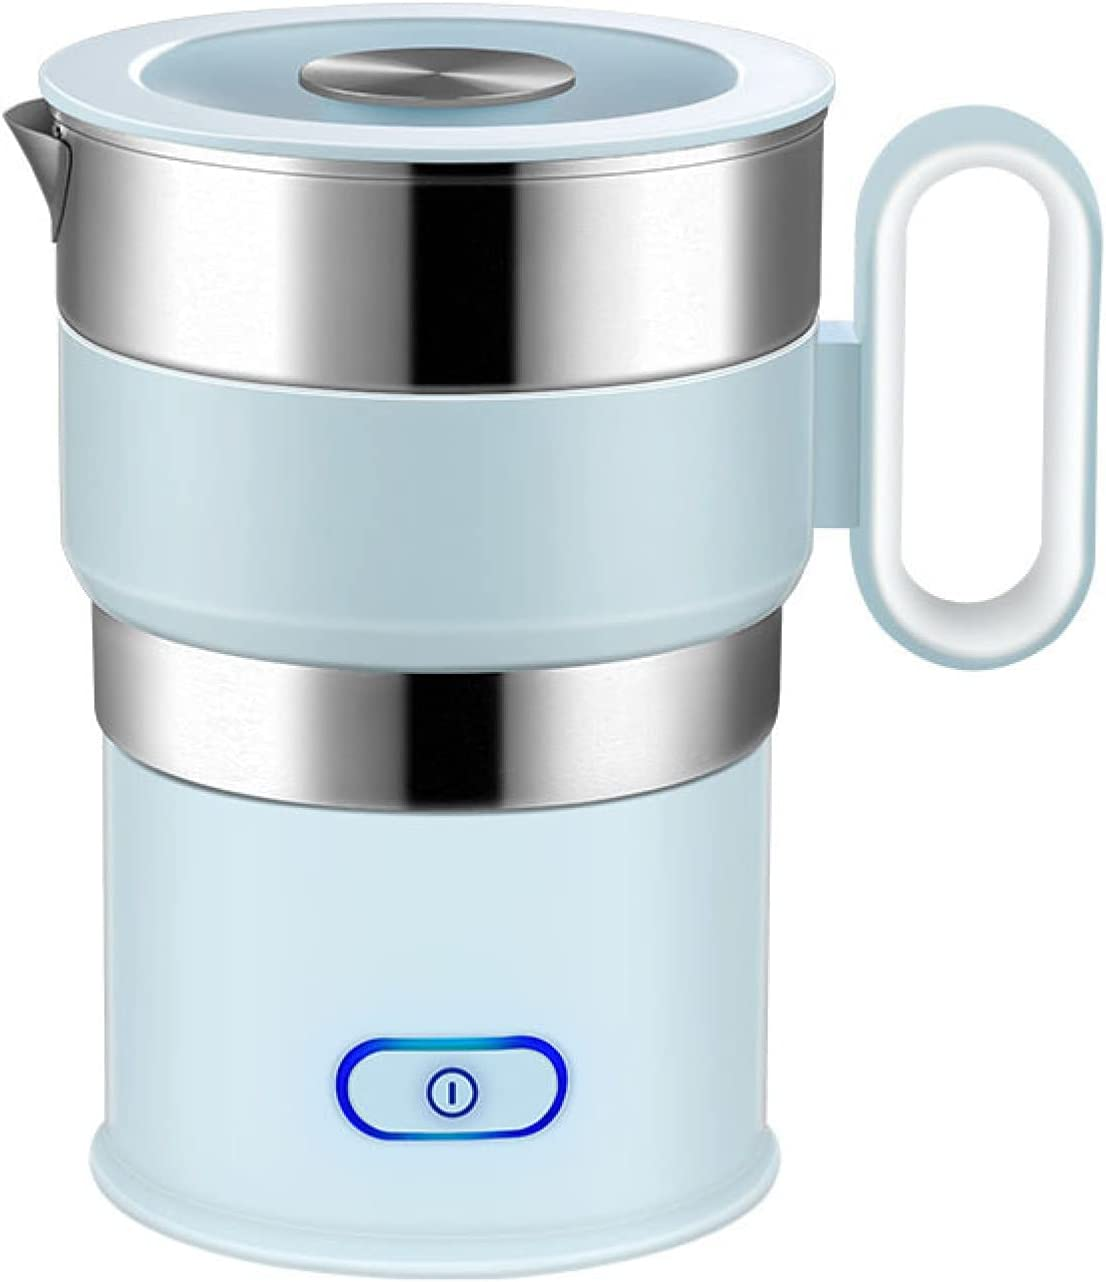 Foldable Kettle Max 61% OFF OFFicial site 500ml Portable Electri Folding Electric